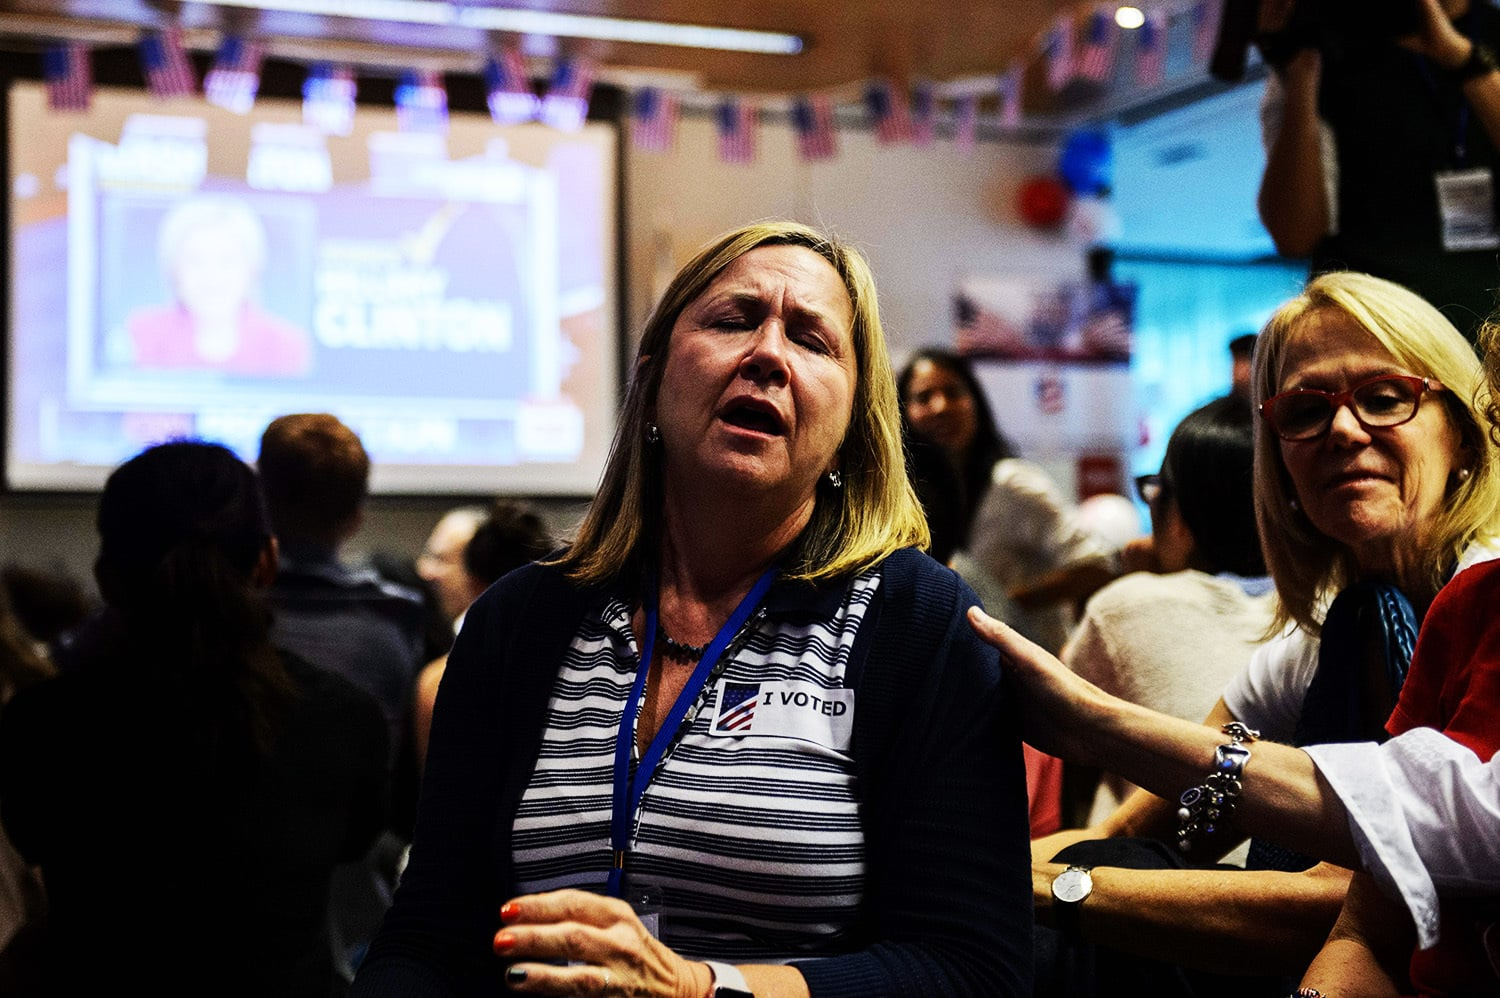 Supporters of Hillary Clinton react as they watch live coverage of the US elections.—AFP